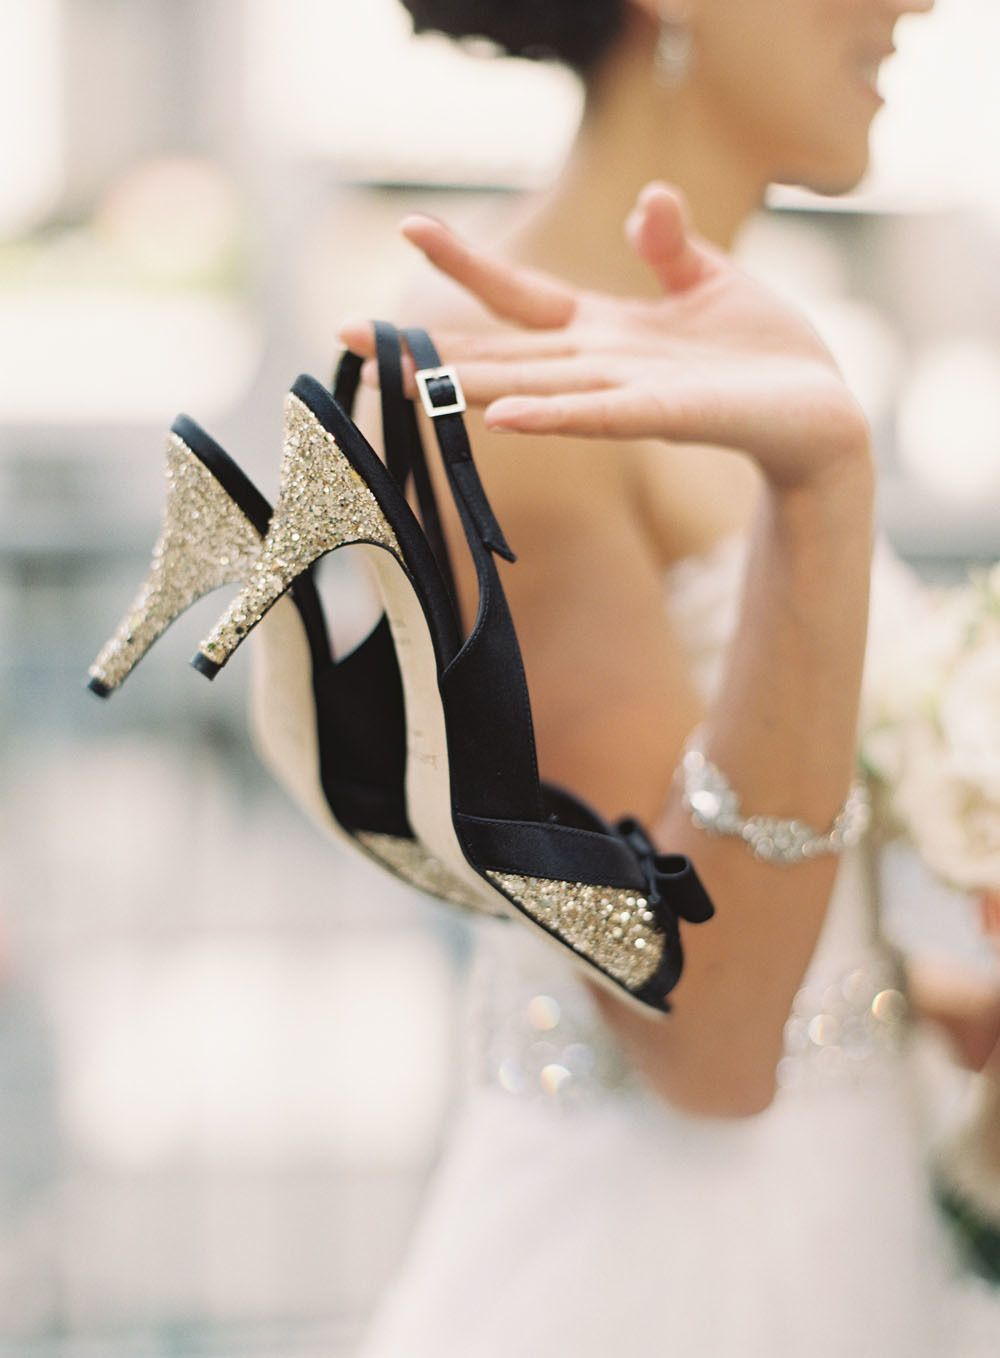 Kate Spade #Shoes | On SMP Weddings: http://www.stylemepretty.com/2013/12/31/elegant-san-francisco-wedding-at-bentley-reserve/ Caroline Tran Photography